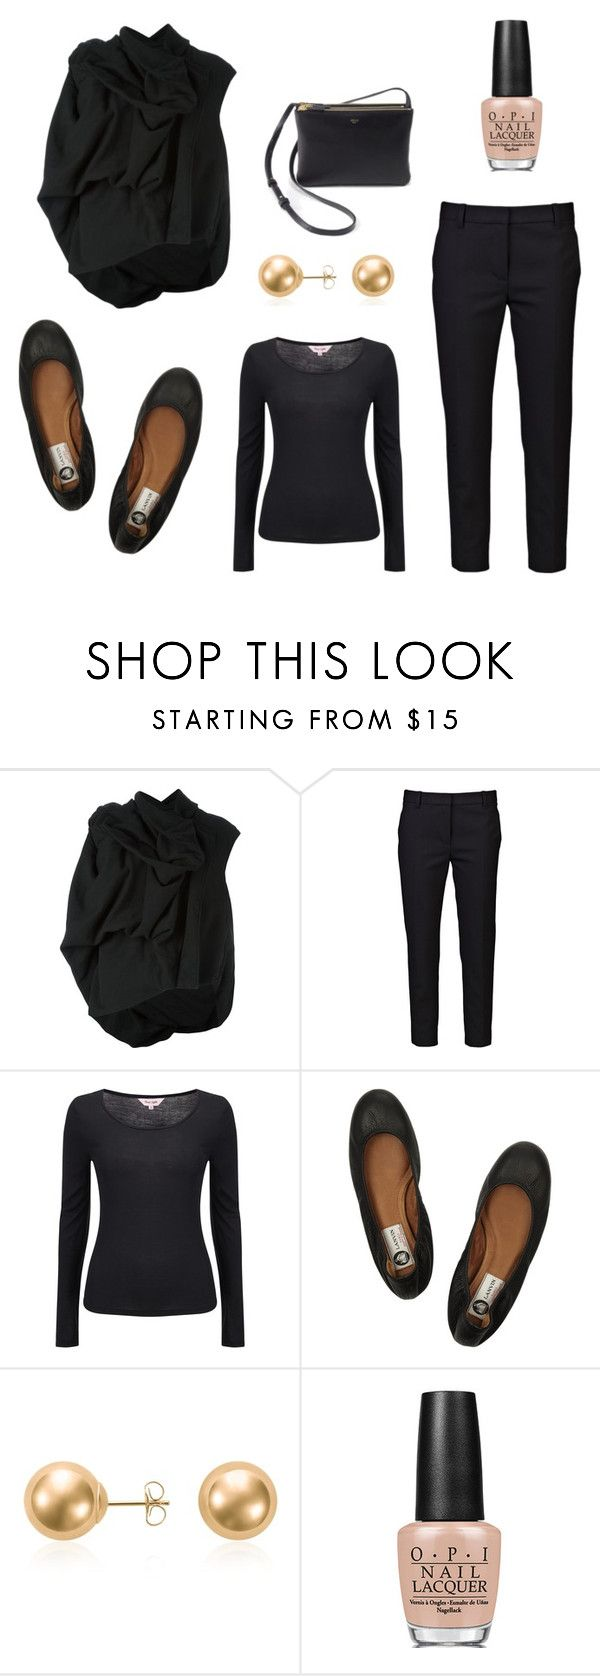 Untitled #34 by leenap on Polyvore featuring Phase Eight, DRKSHDW, 3.1 Phillip Lim, Lanvin, Blue Nile, OPI and CÉLINE